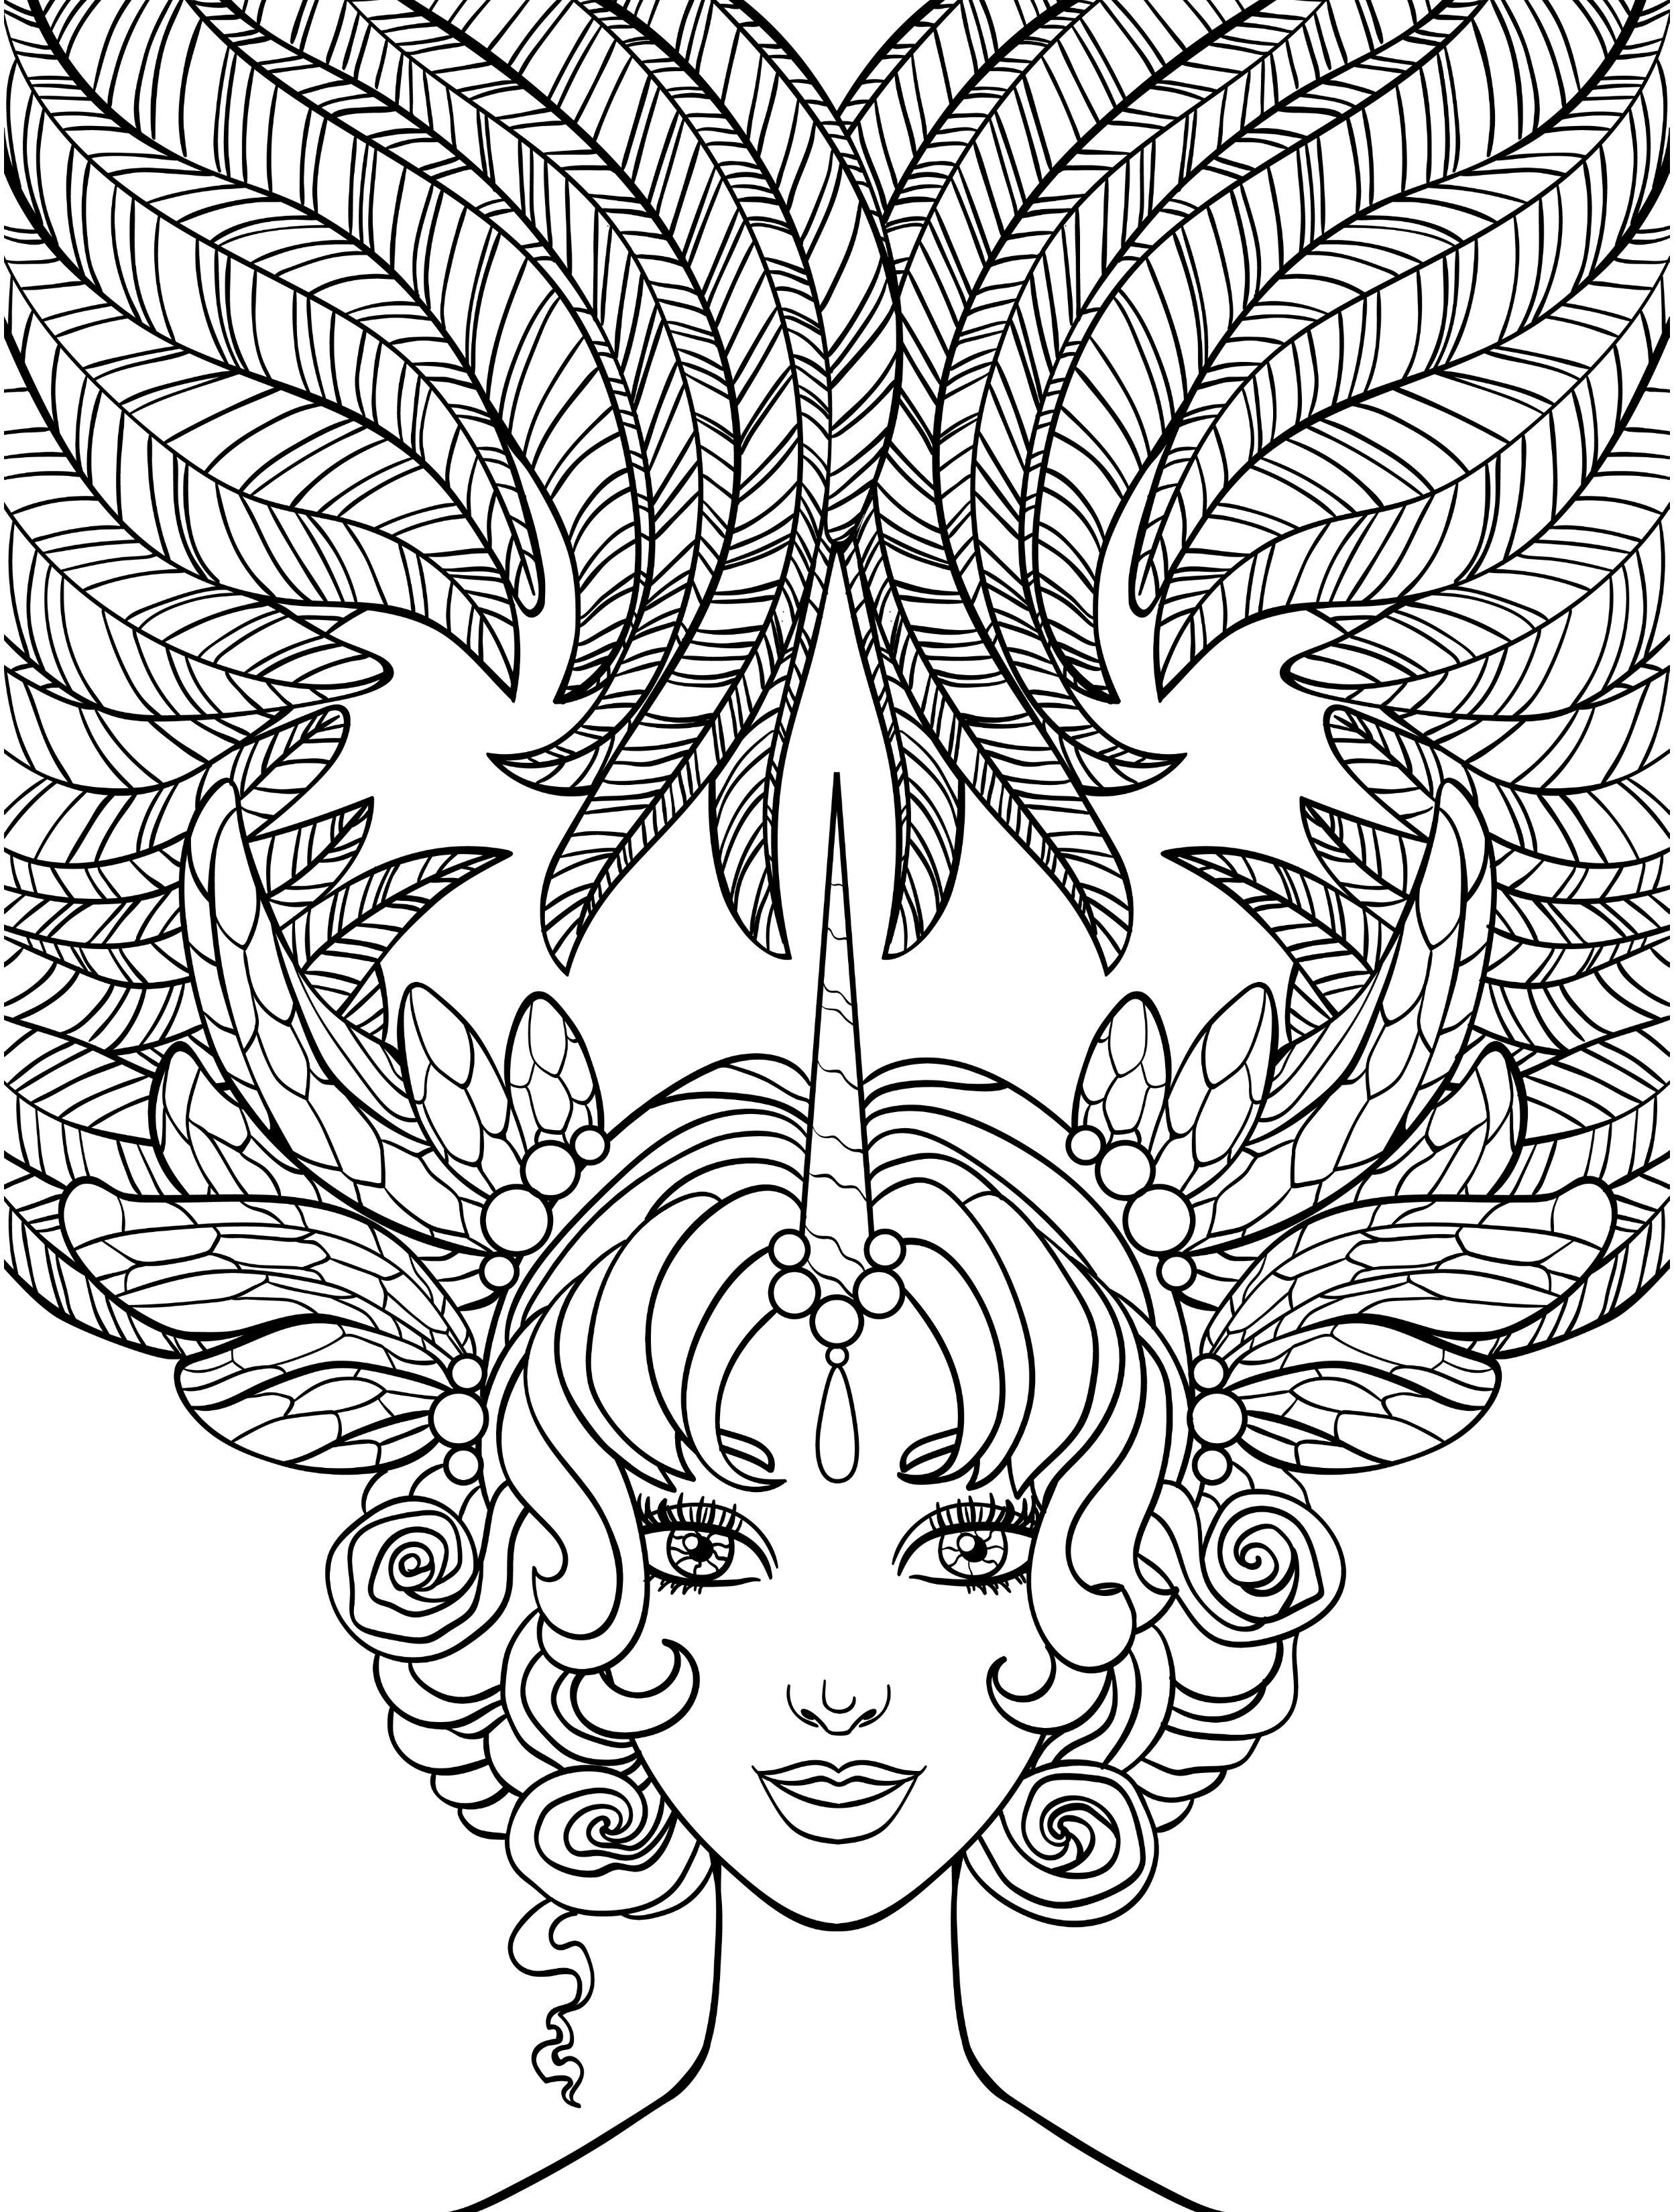 Printable Hair Coloring Pages. 10 Crazy Hair Adult Coloring Pages  coloring pages Pinterest